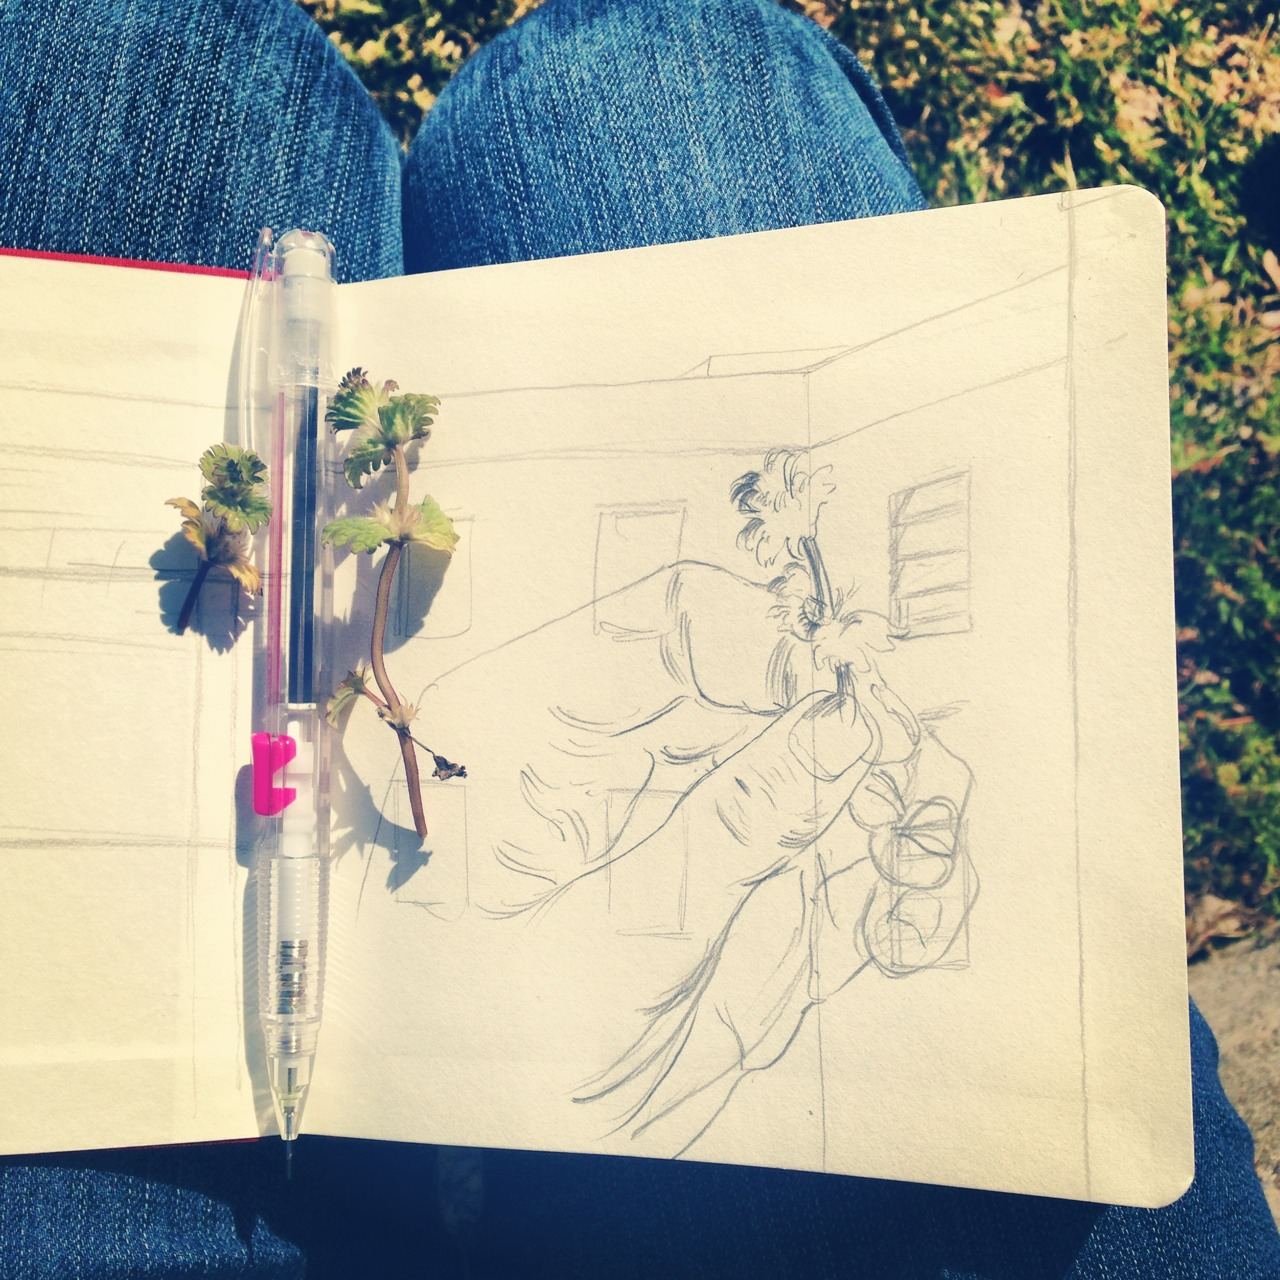 Drawing outside on a nice day